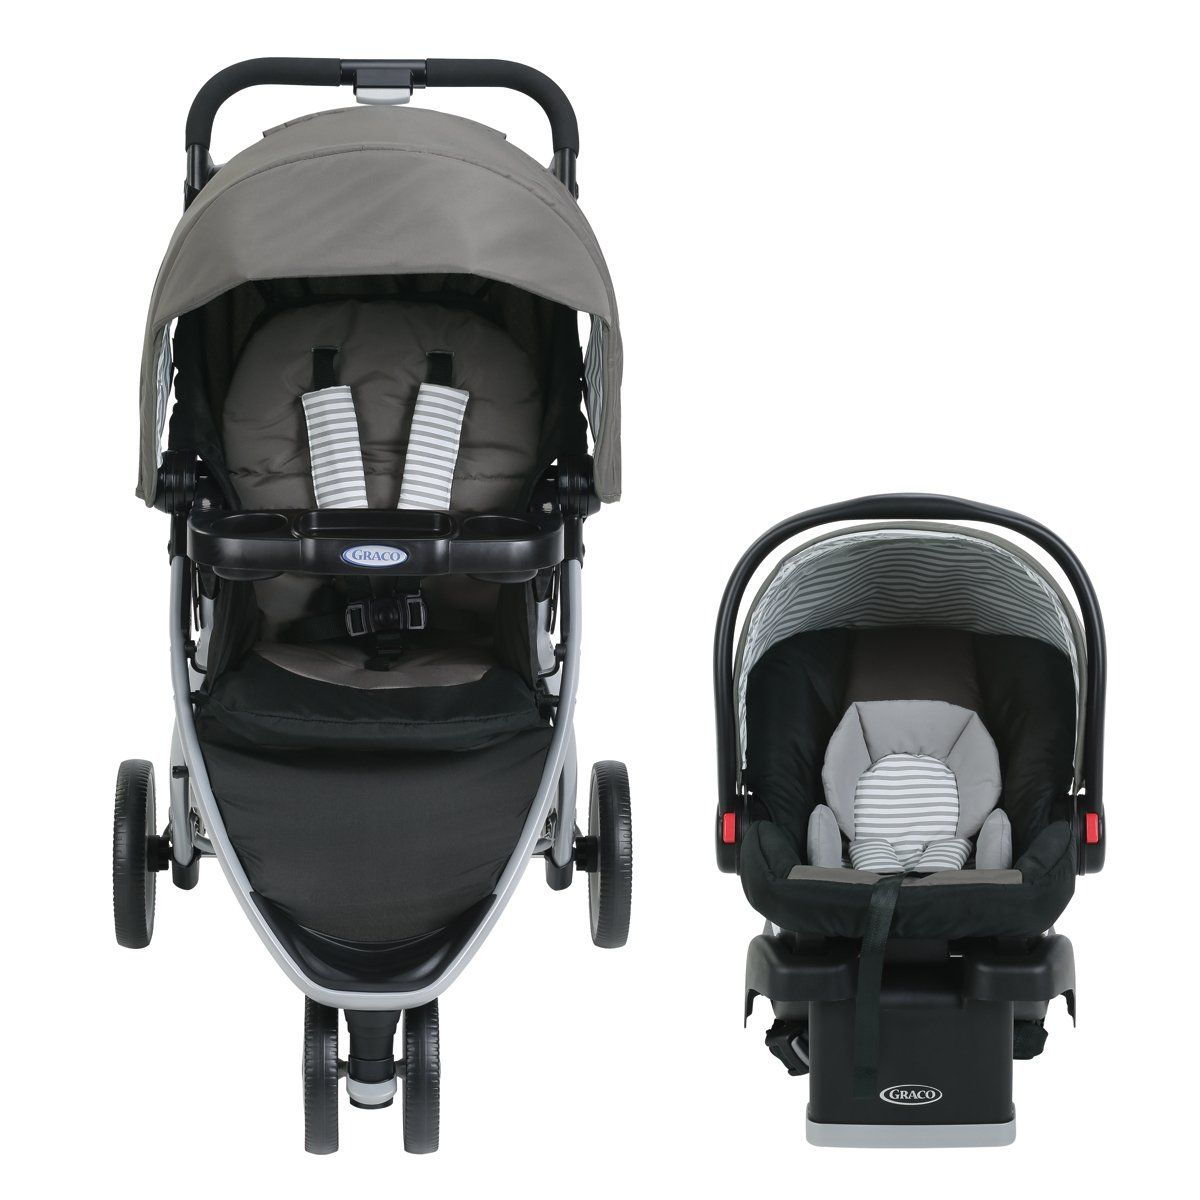 Pace Travel System Pipp Travel system, Baby car seats